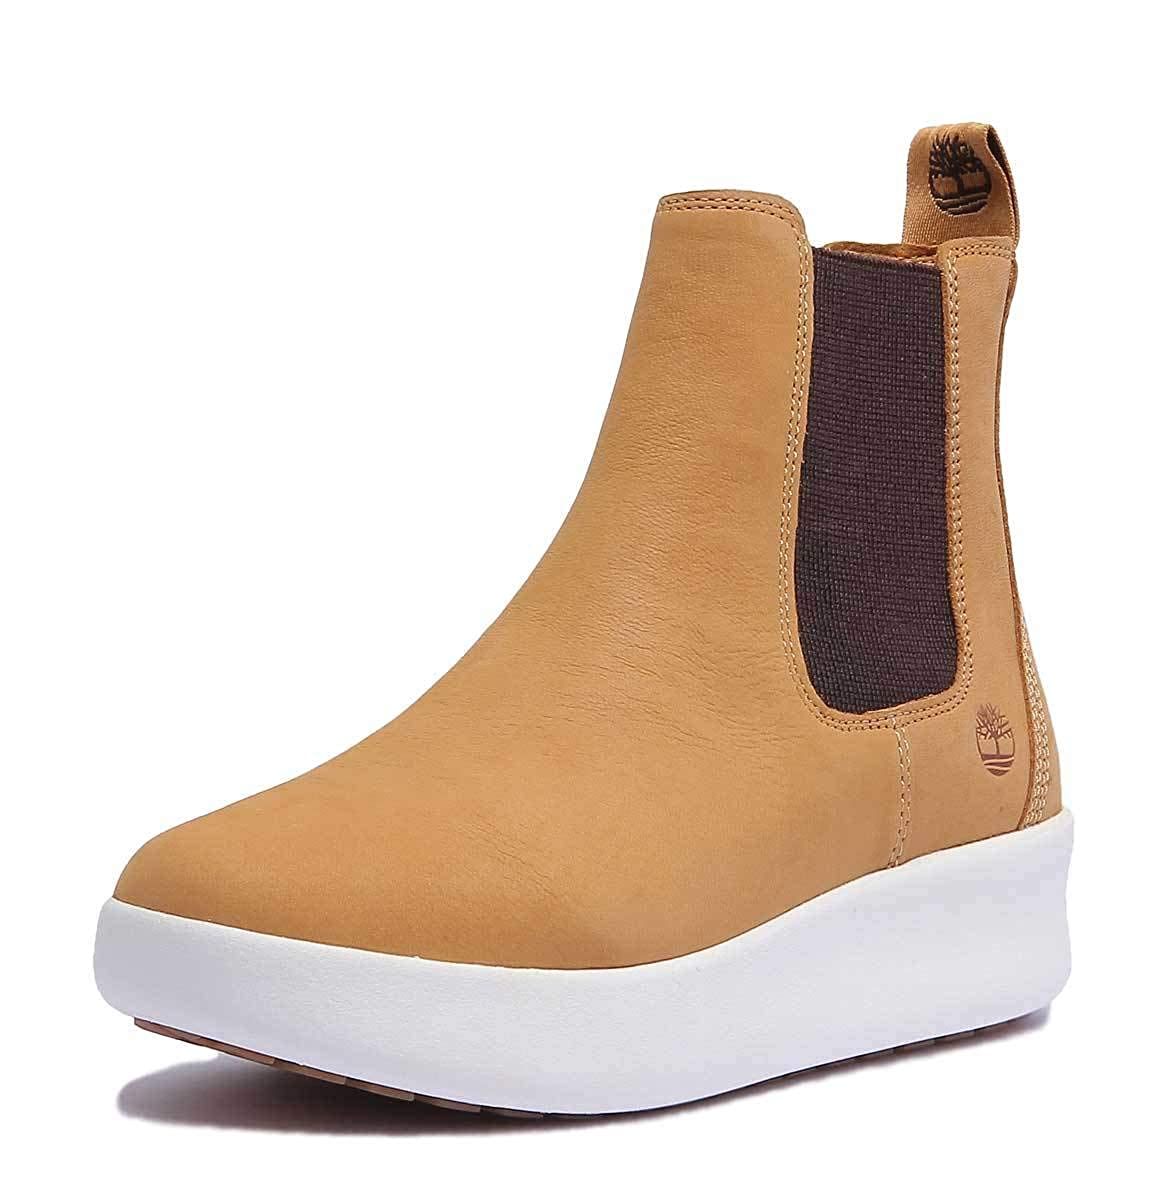 27606a33a1ef Timberland Womens Berlin Park Chelsea Boots in Spruce Yellow  Amazon.co.uk   Shoes   Bags